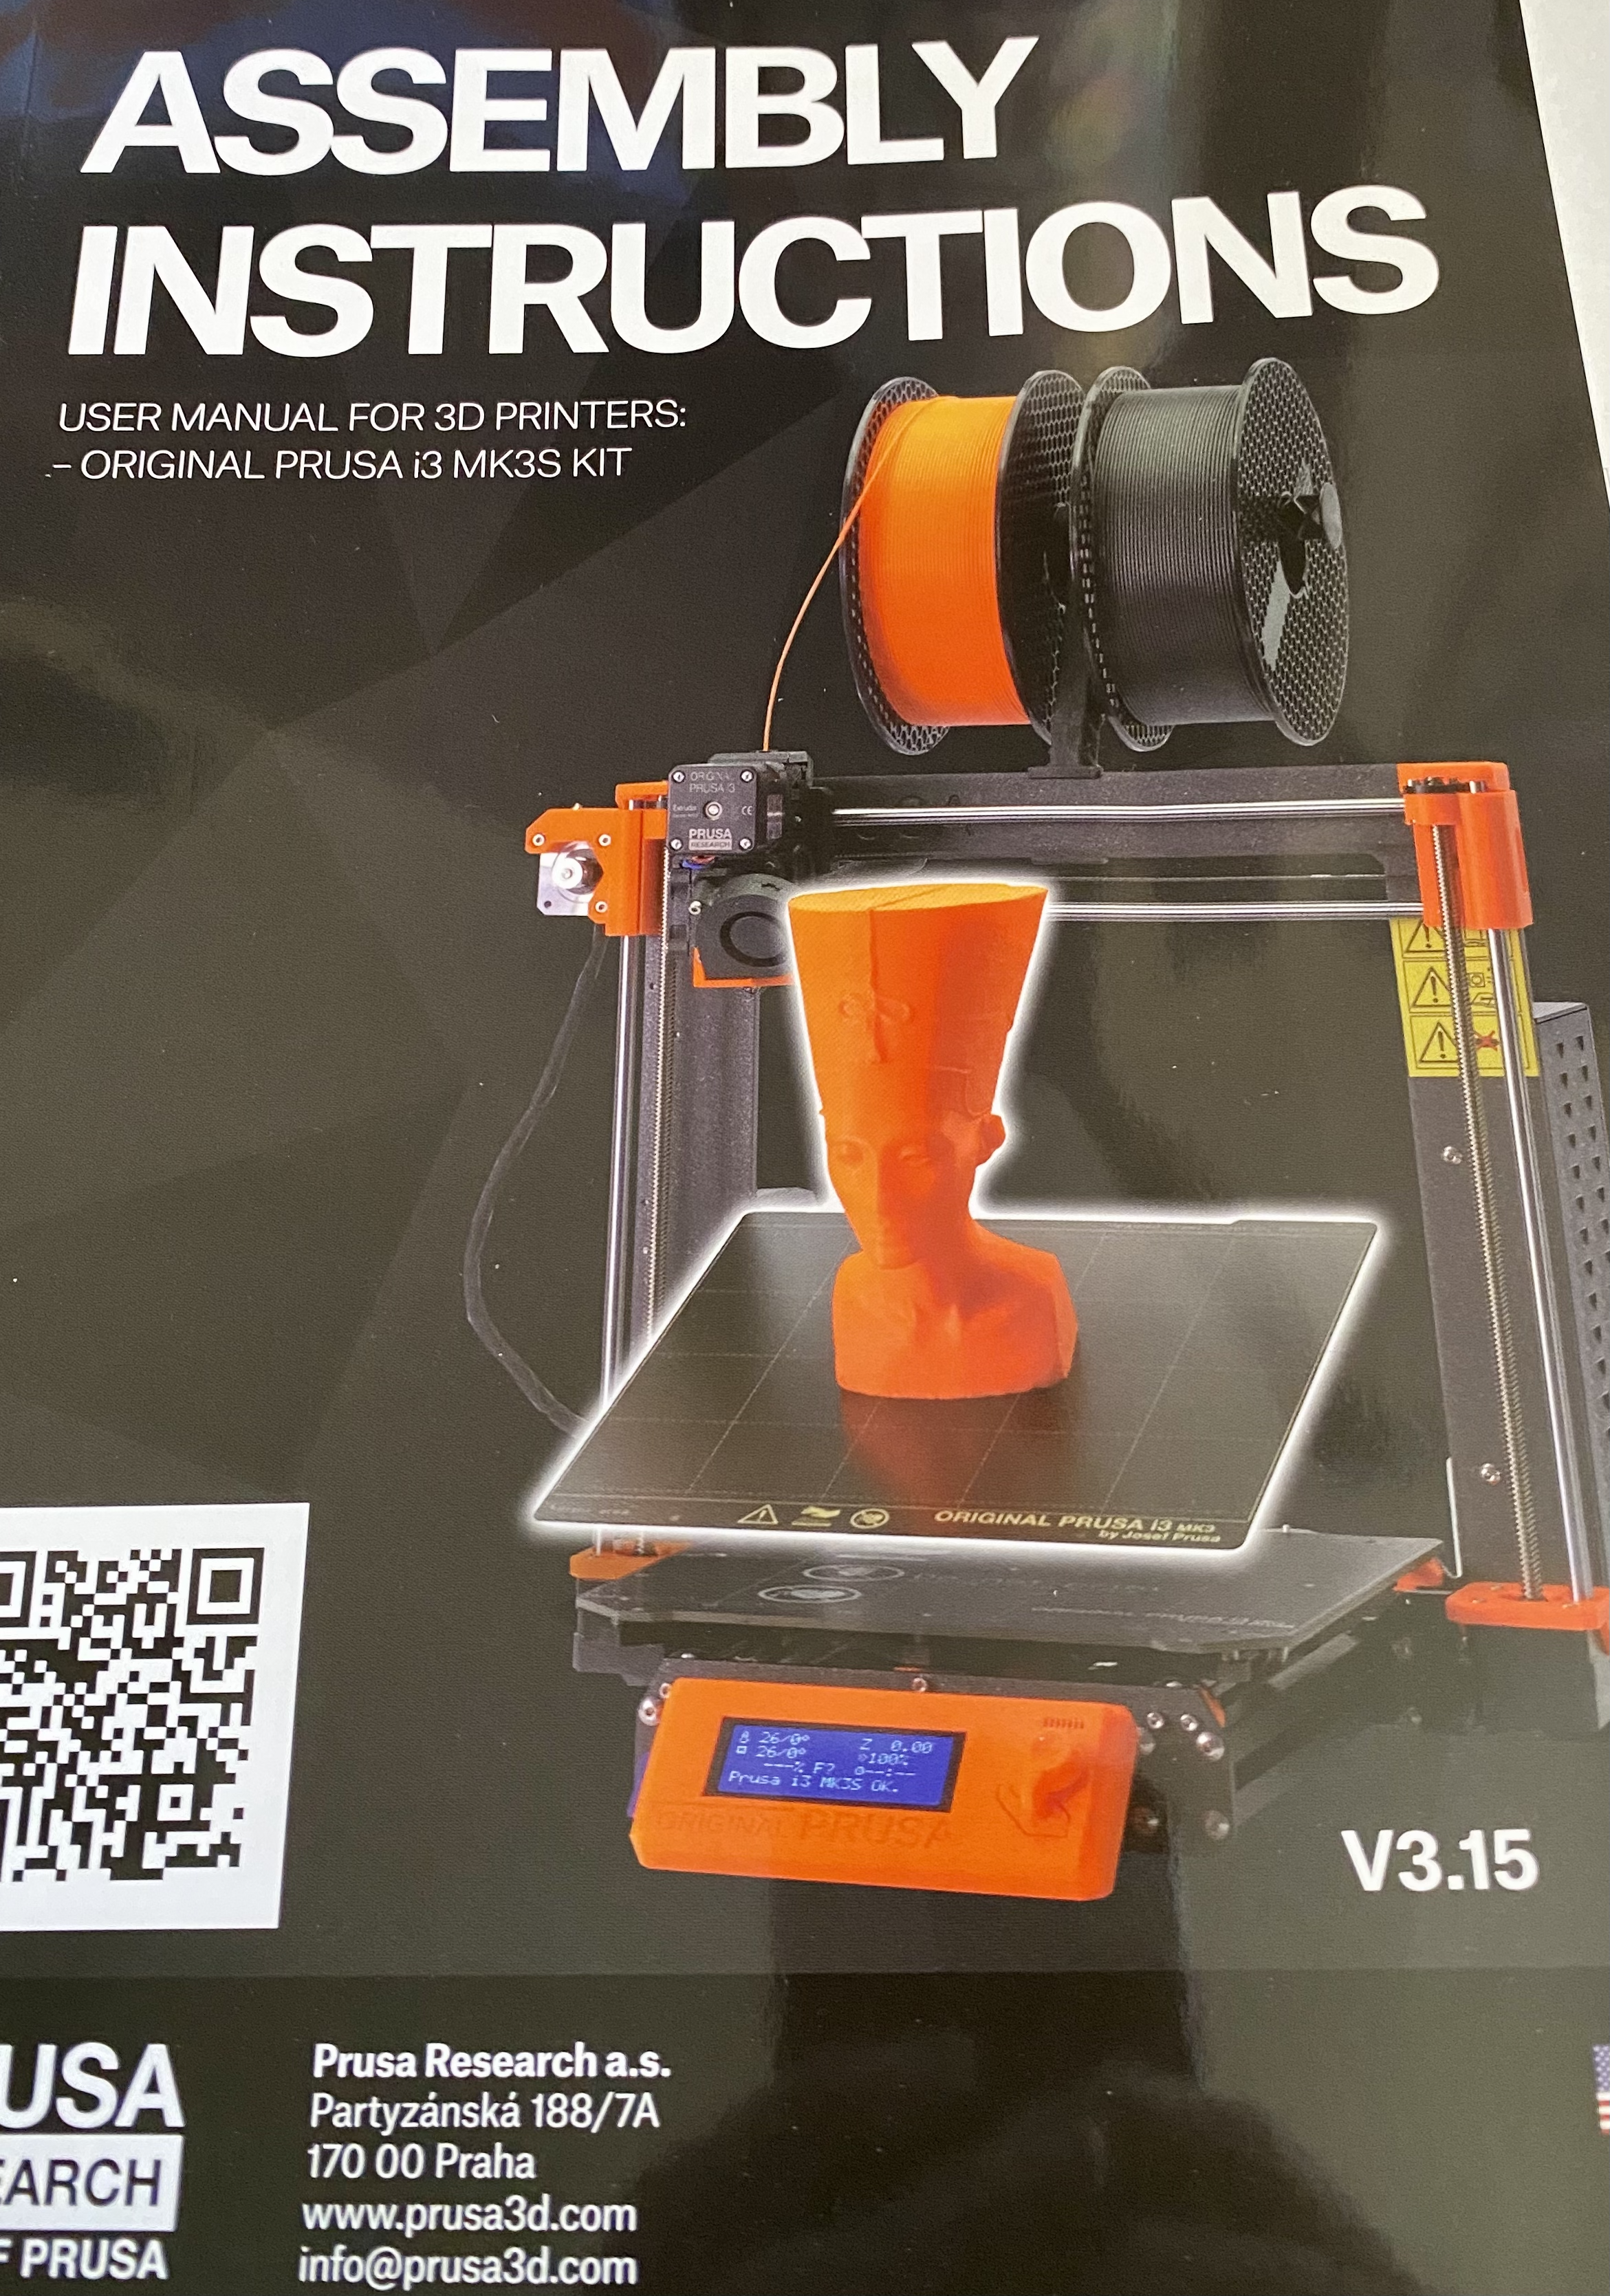 Prusa instruction book.